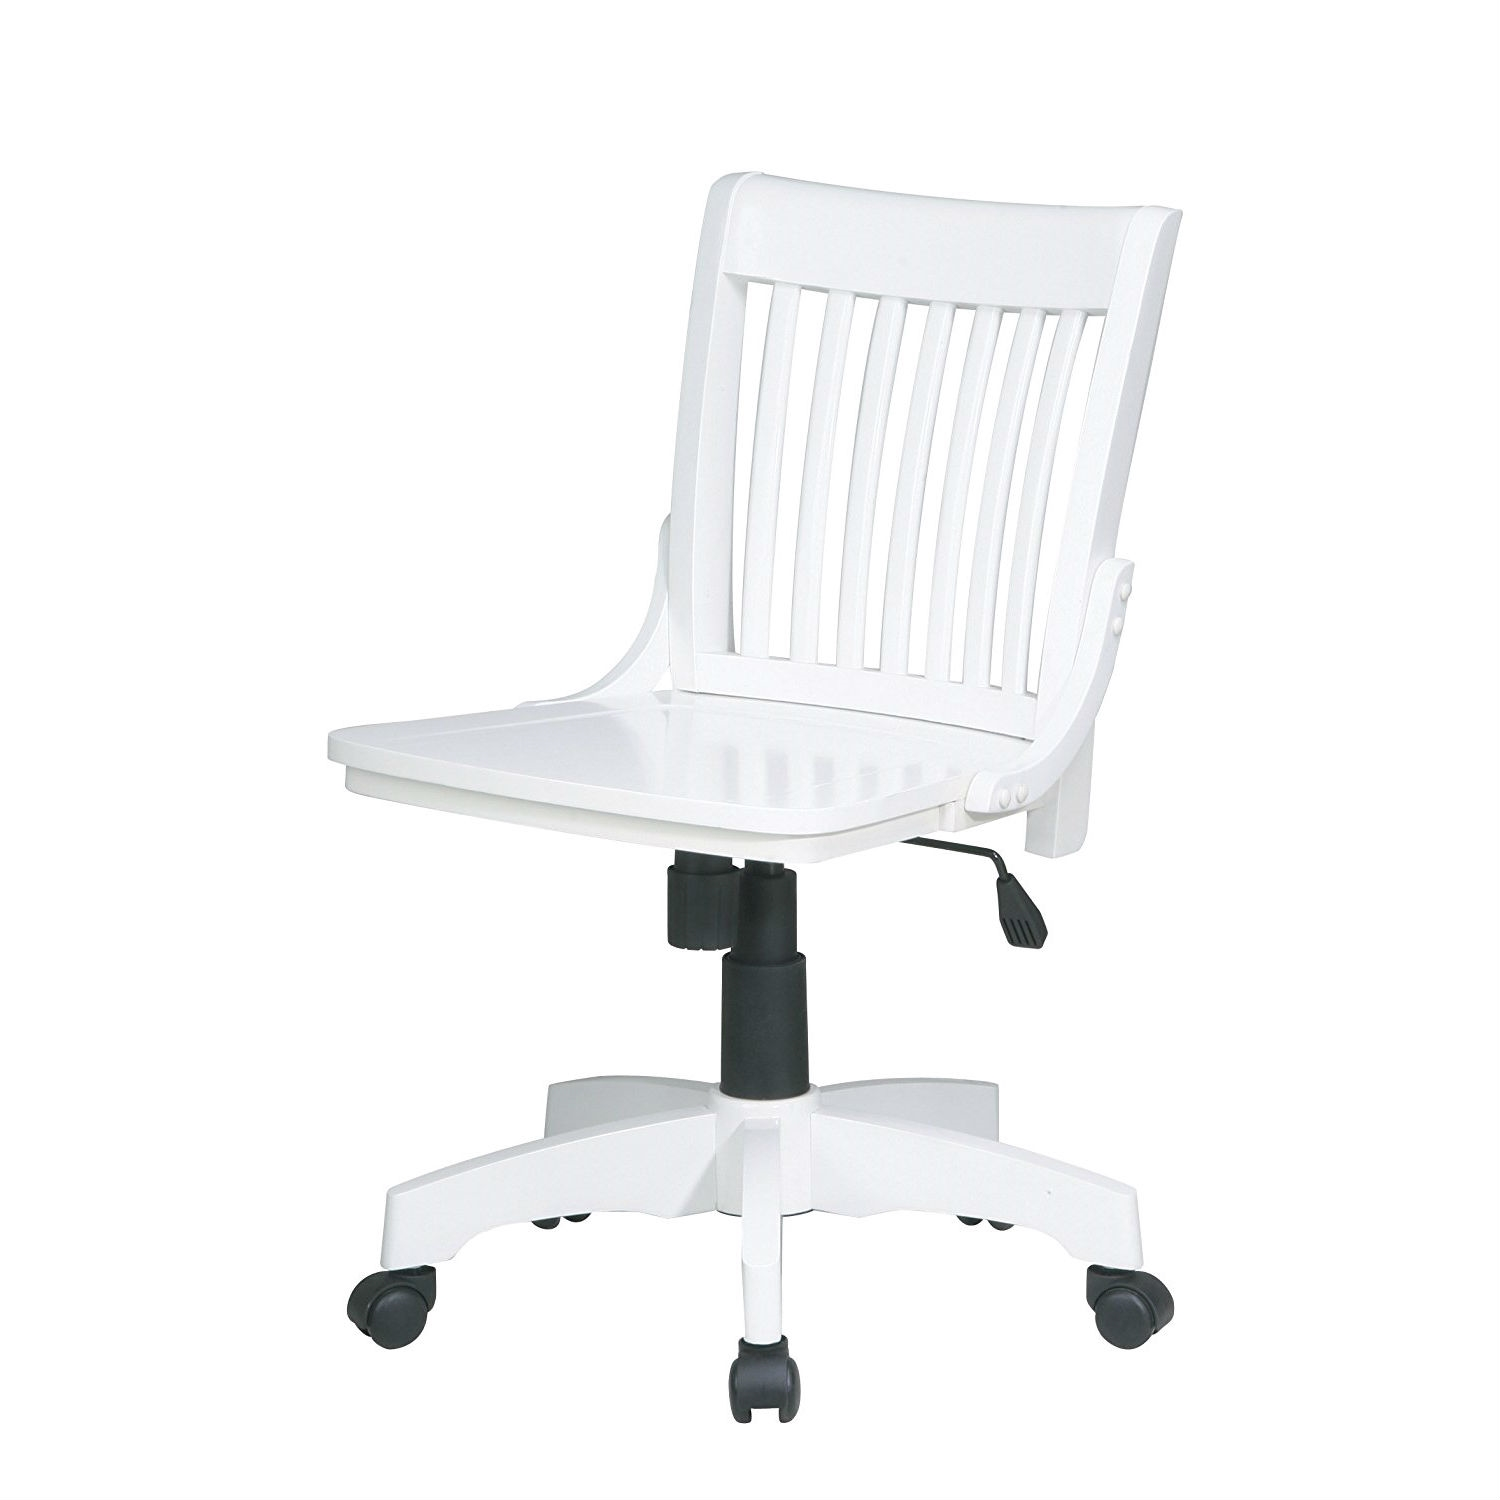 ikea chair mat standing yoga poses for seniors white armless bankers with wood seat